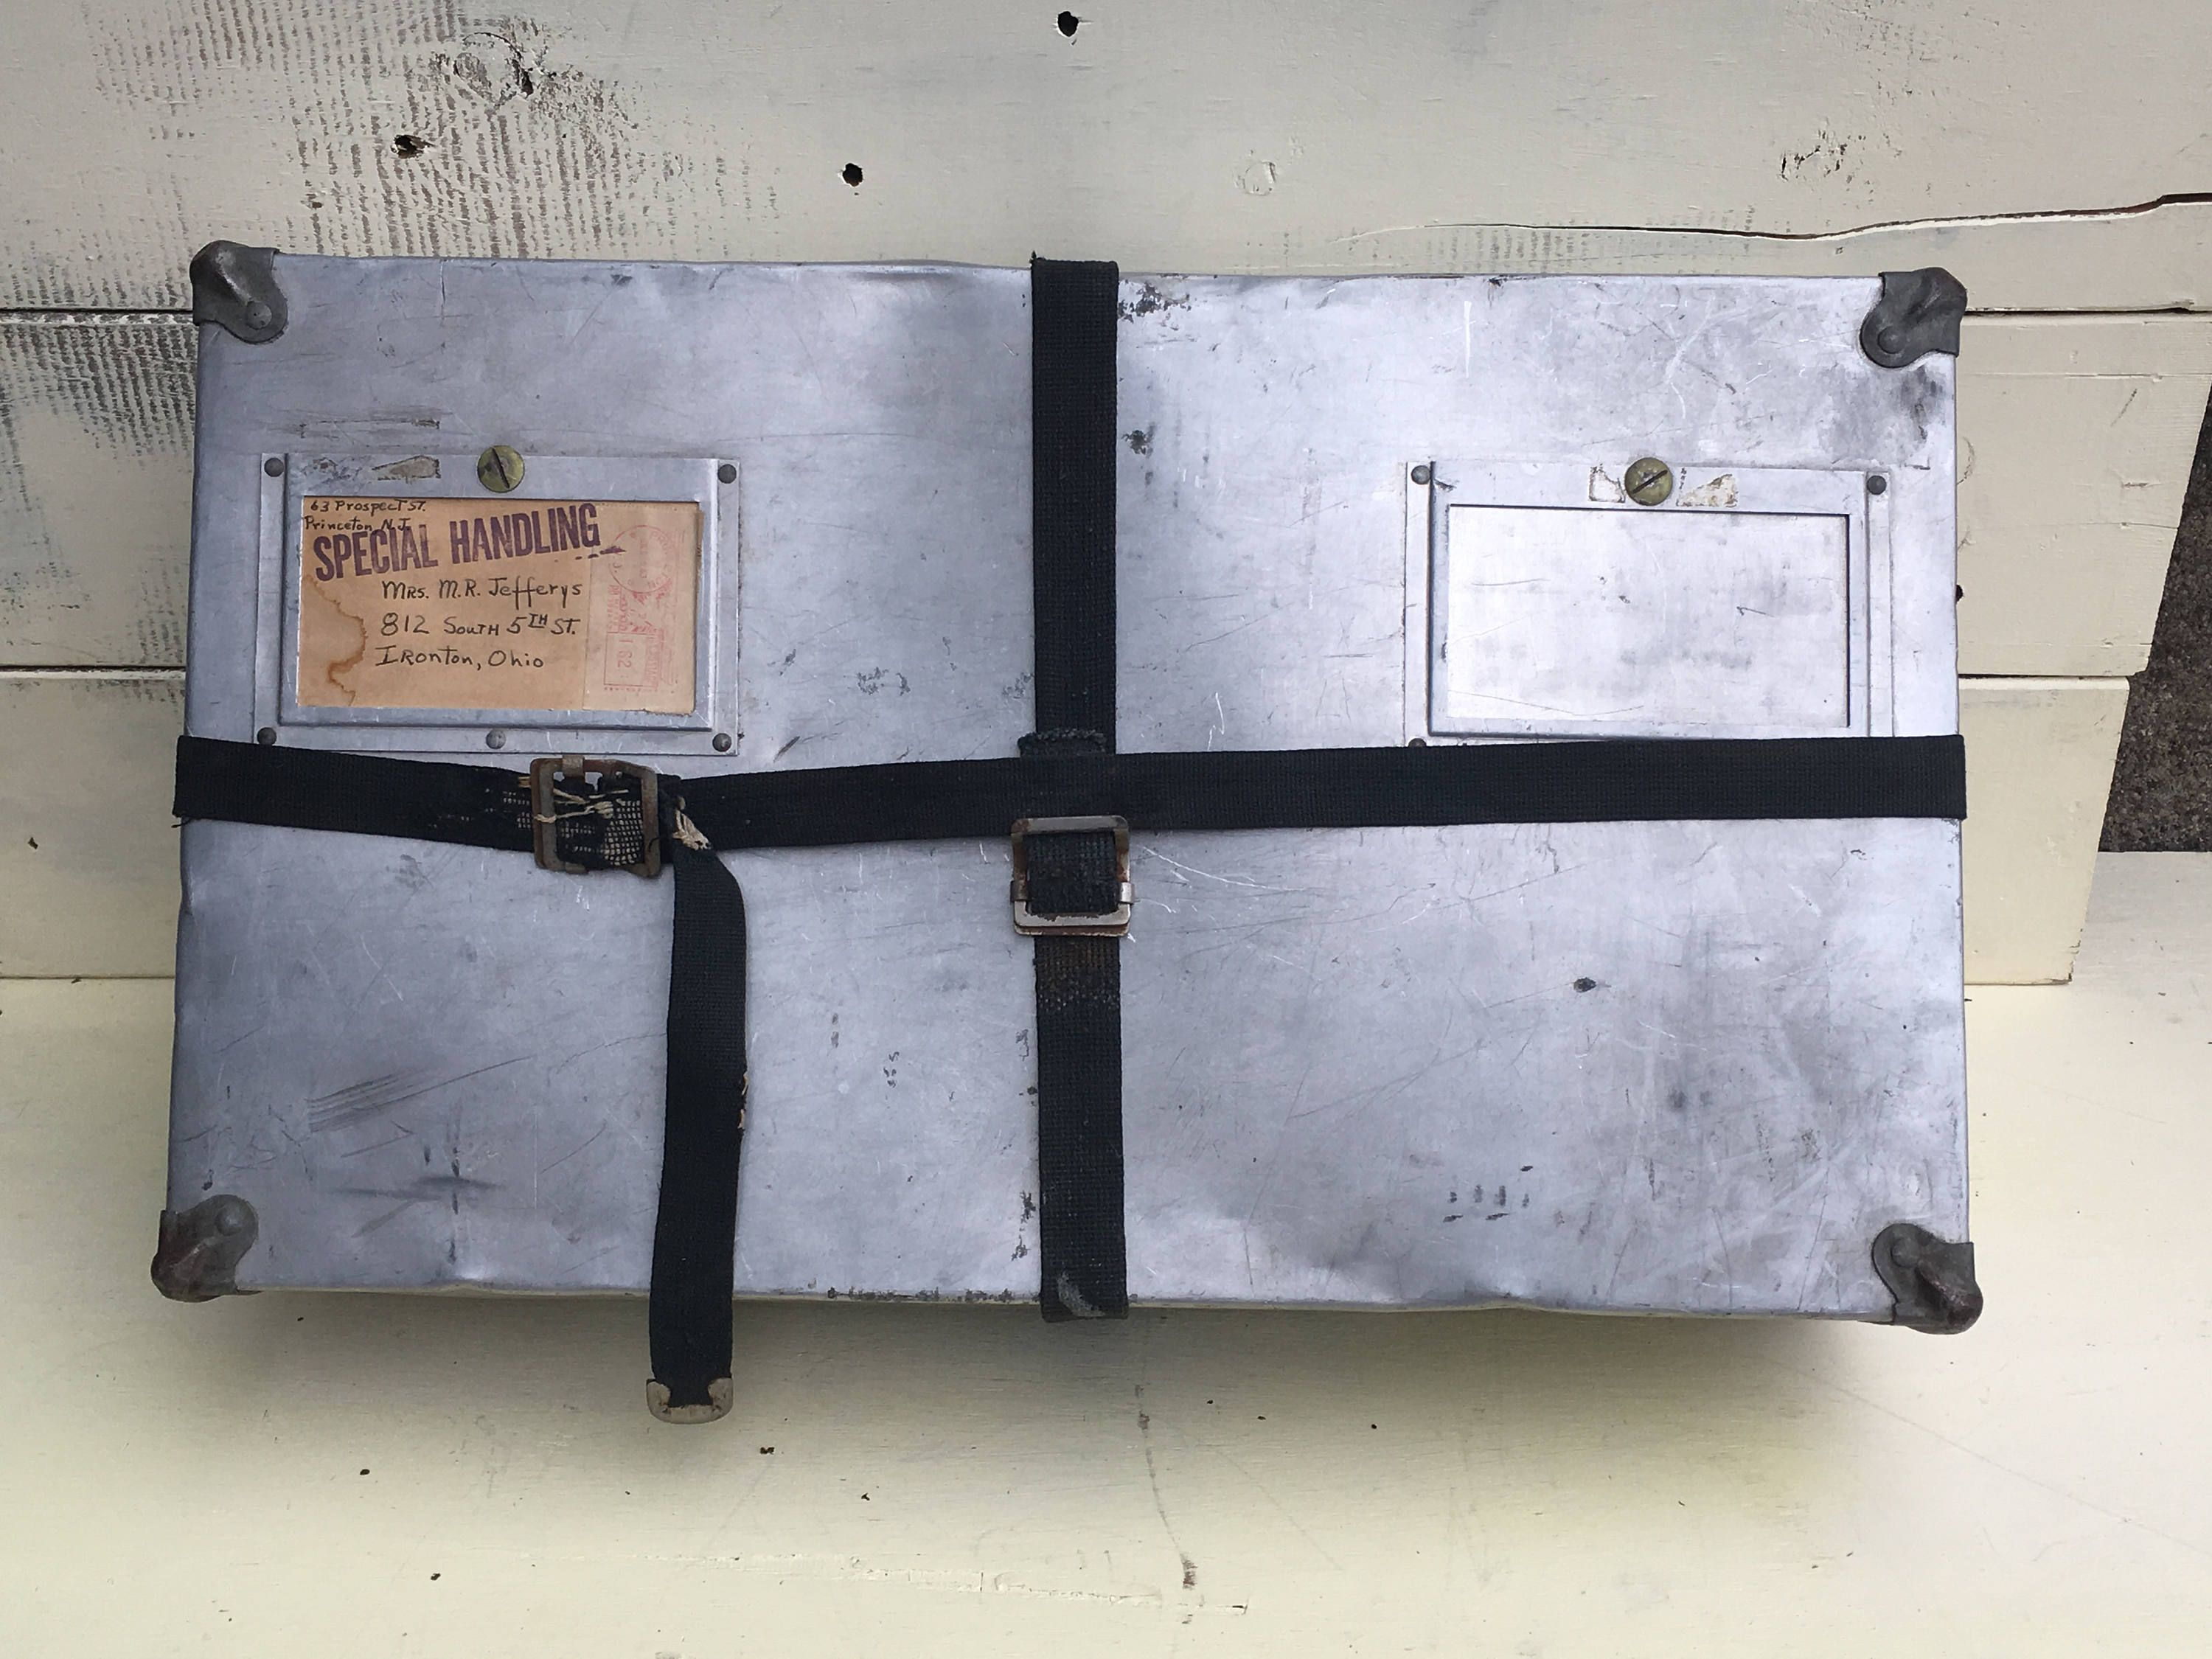 Unique Metal Air Mail Box * 1950s-60s Metal Mailing Box with Straps ...